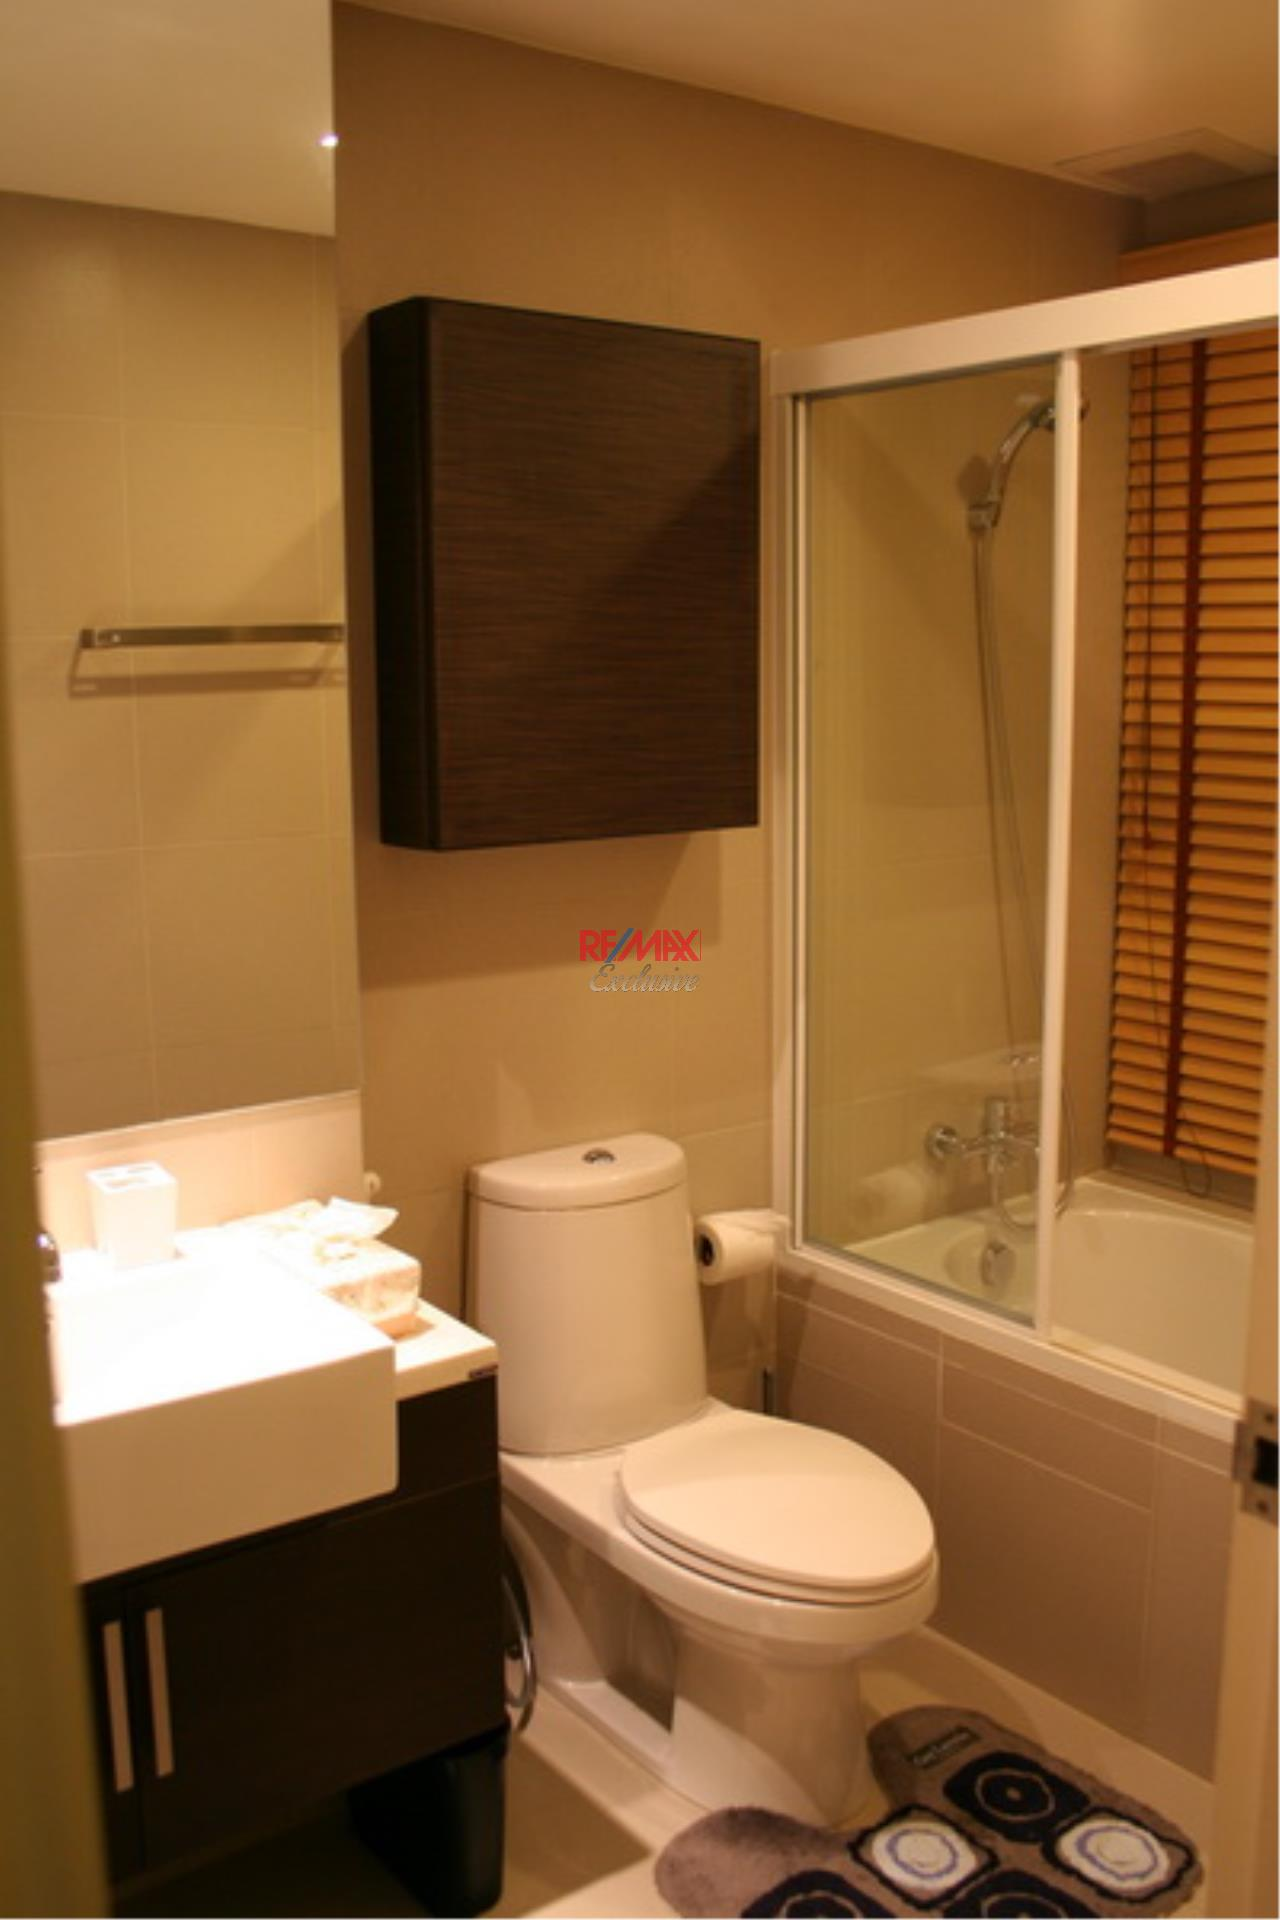 RE/MAX Exclusive Agency's NOBLE REMIX, Sukhumvit 36, 62 Sqm., 1 Bedroom, Fully-Furnished, European Style Decoration - RENT !! 11